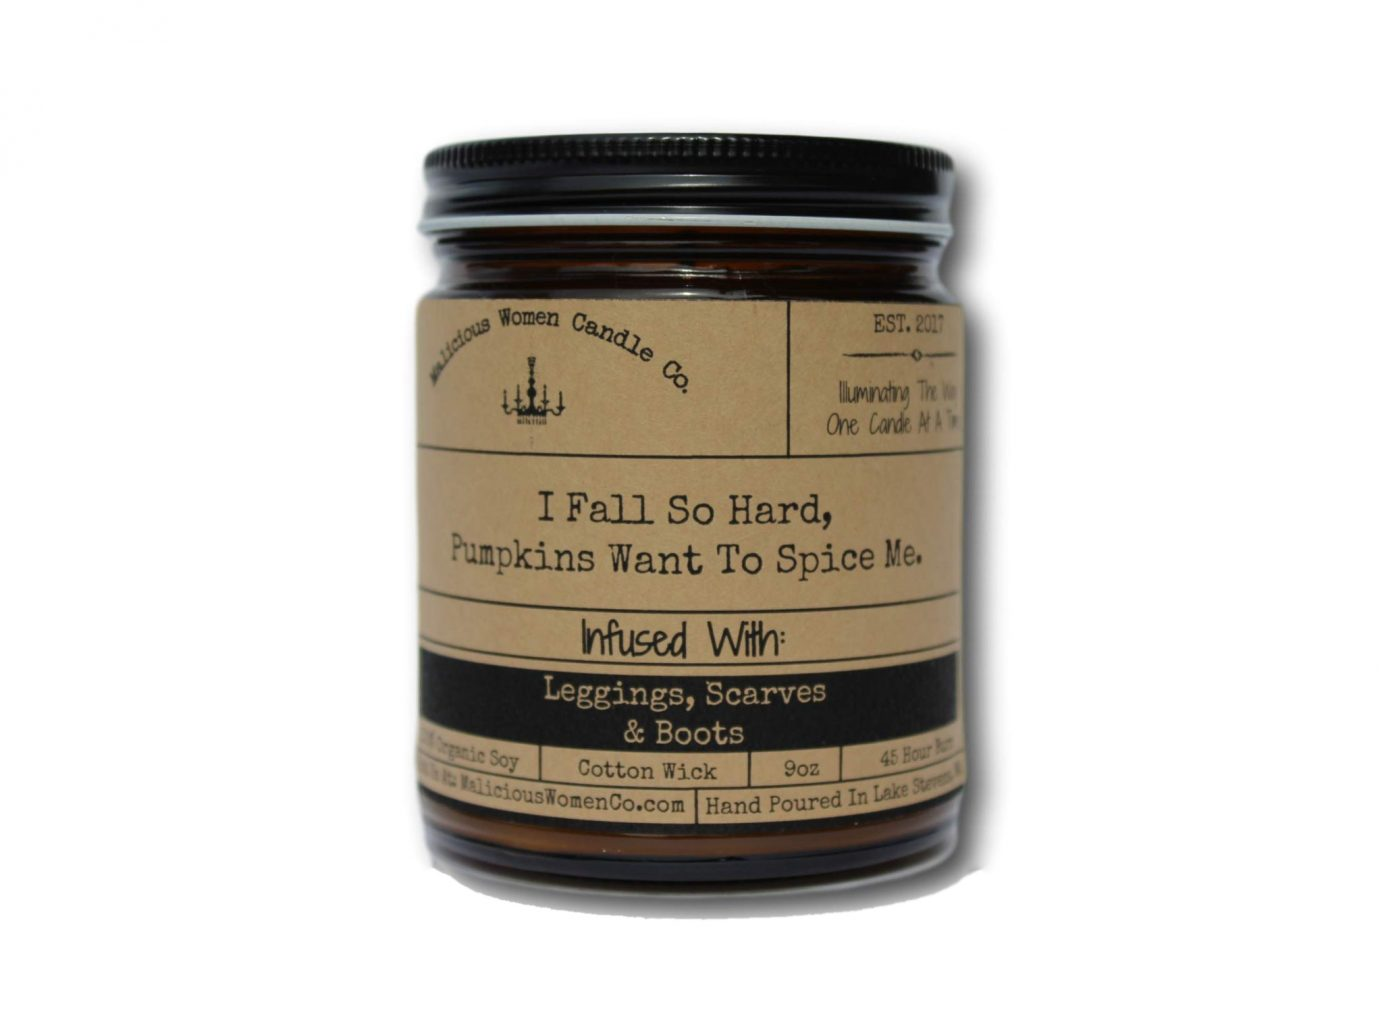 Malicious Women Candle Co - I Fall So Hard, Pumpkins Want to Spice Me Candle